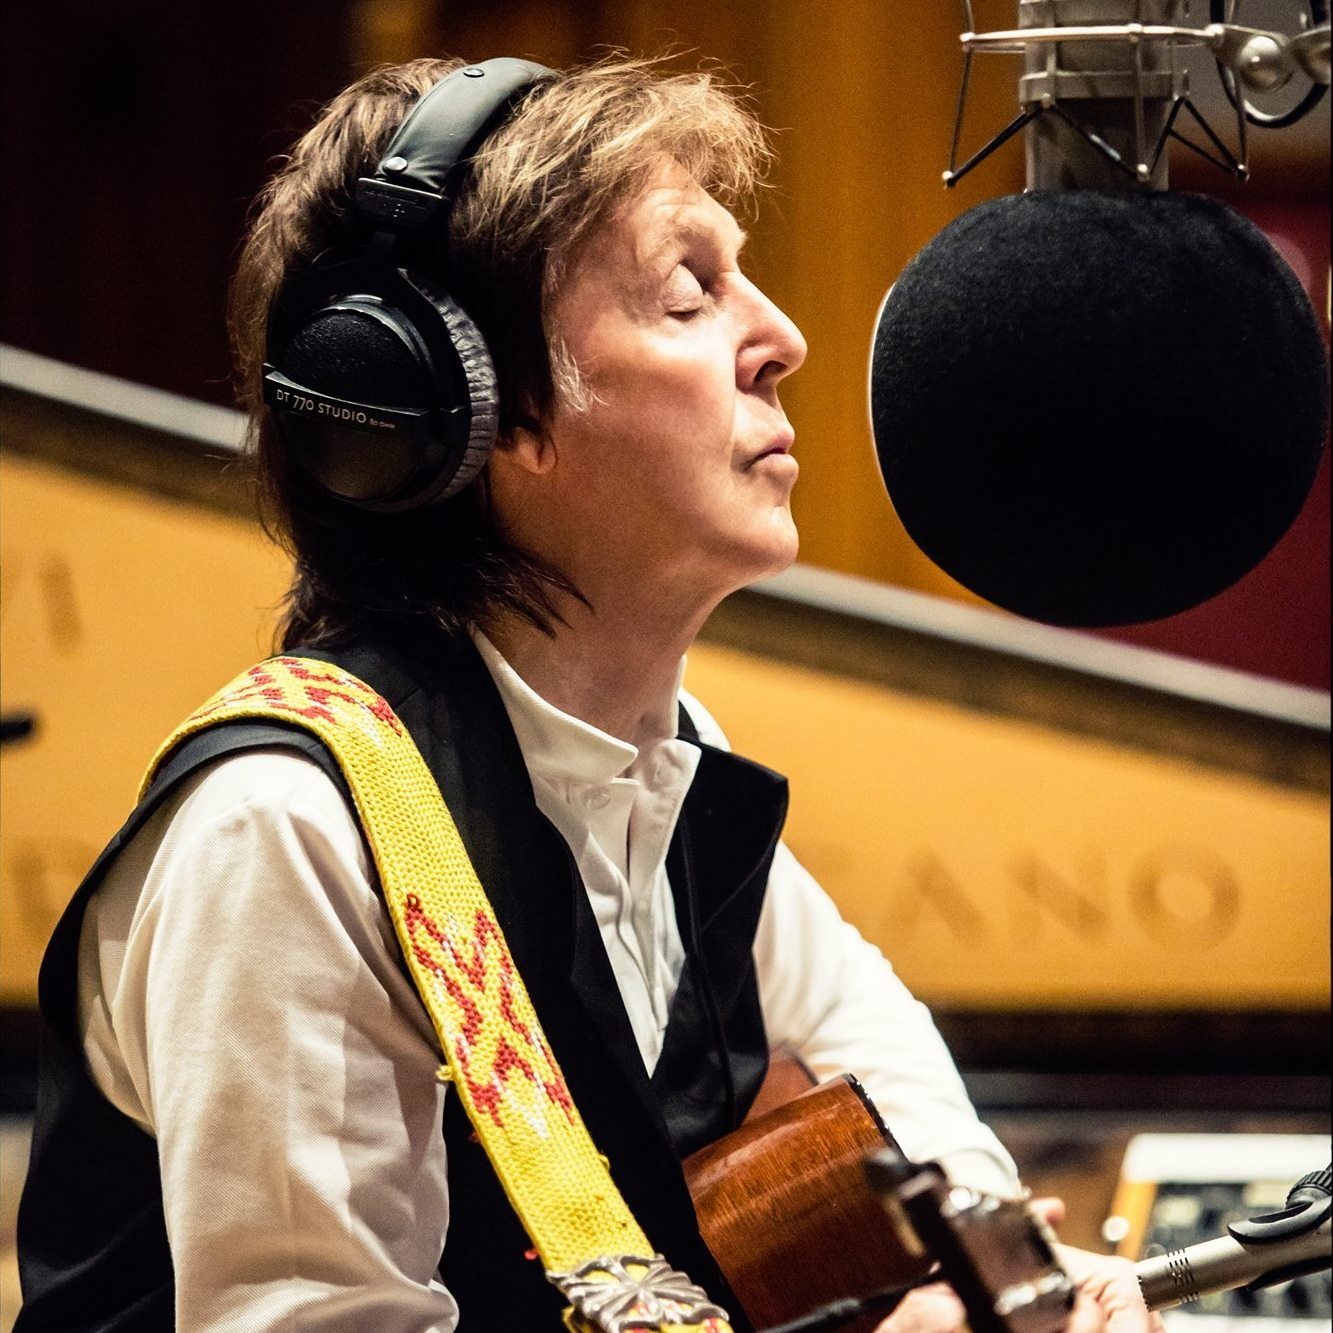 Paul McCartney announces new album, Egypt Station